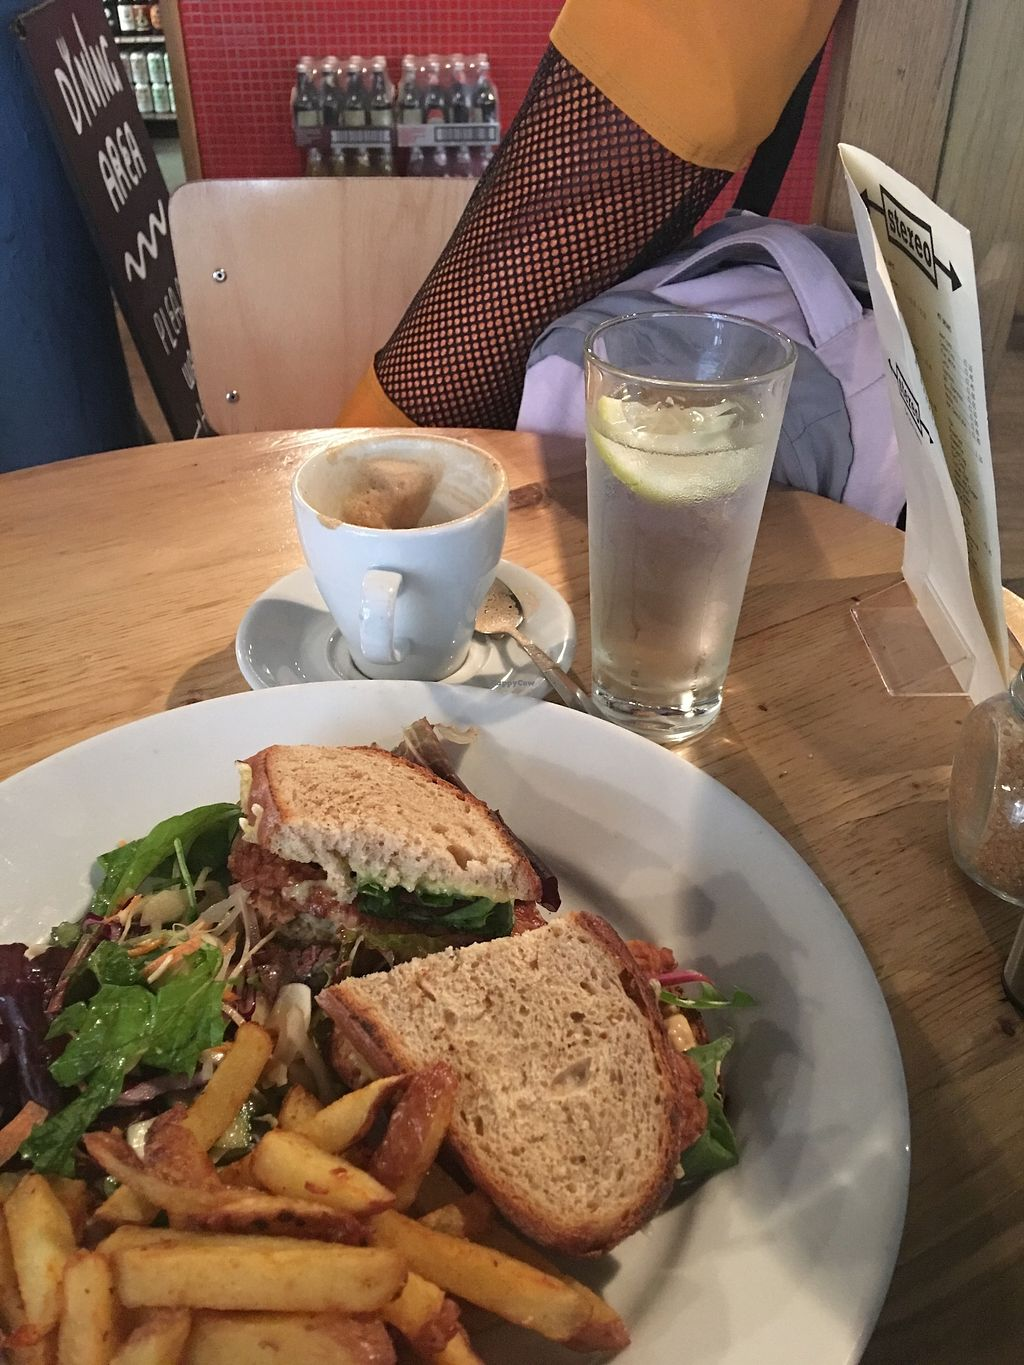 """Photo of Stereo  by <a href=""""/members/profile/HighlandBuddha"""">HighlandBuddha</a> <br/>Tempeh Reuben sandwich and soya flat white  <br/> July 18, 2017  - <a href='/contact/abuse/image/15285/281684'>Report</a>"""